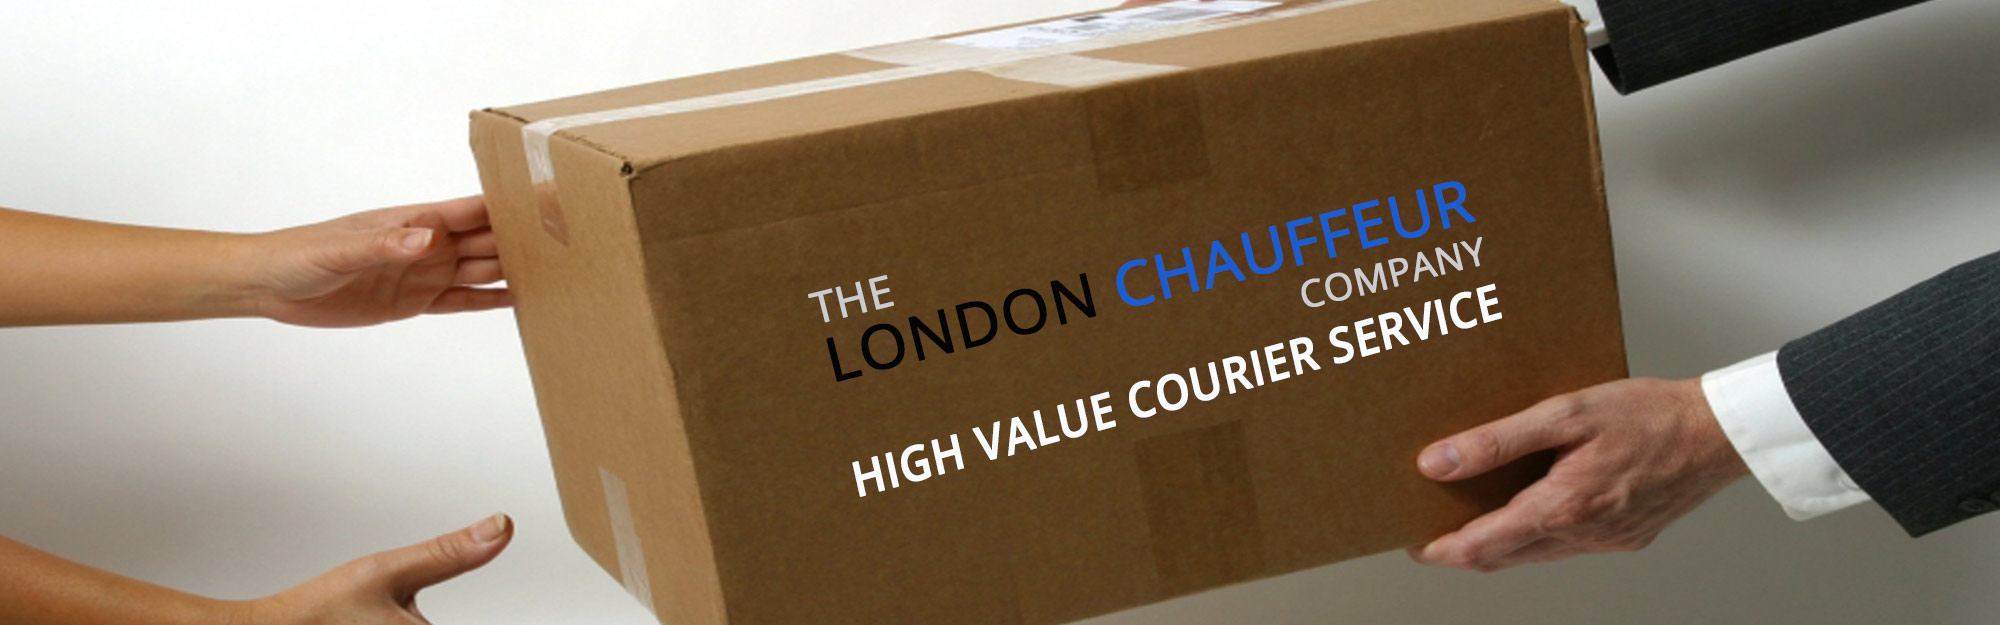 high-value-courier-london